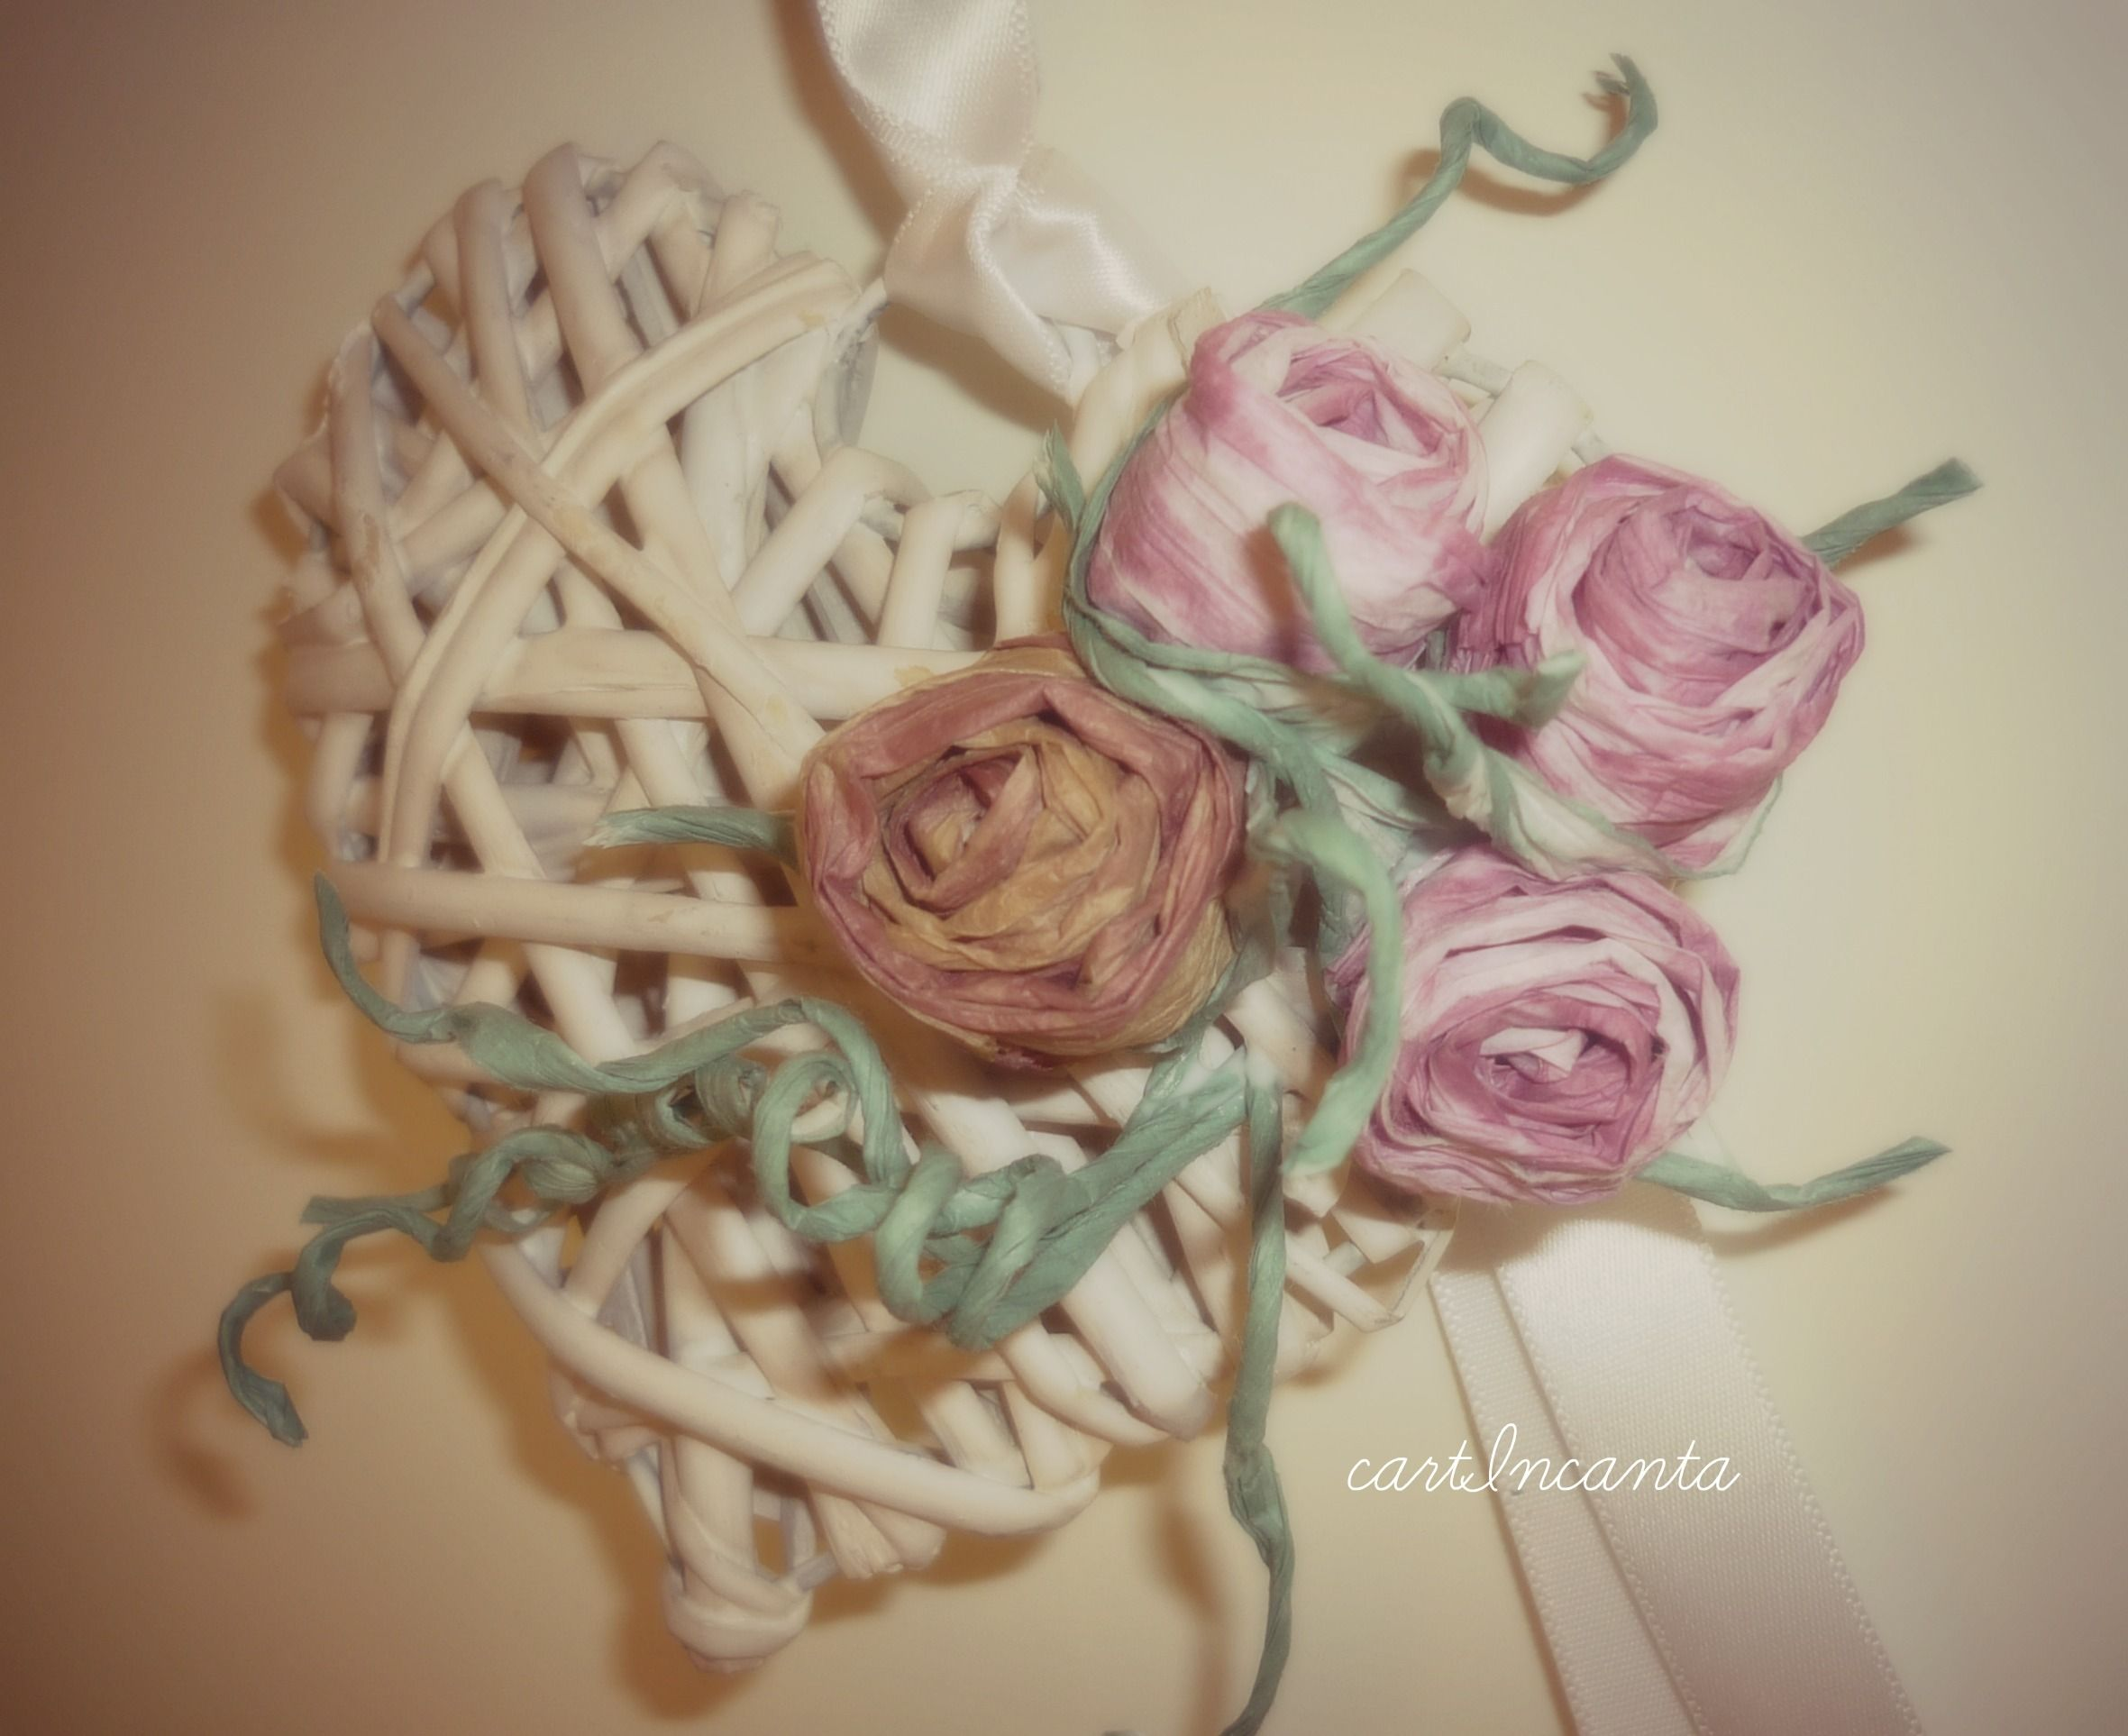 Rattan shabby heart decorated with finnish paper thread roses. http://cartincanta.blogspot.it/